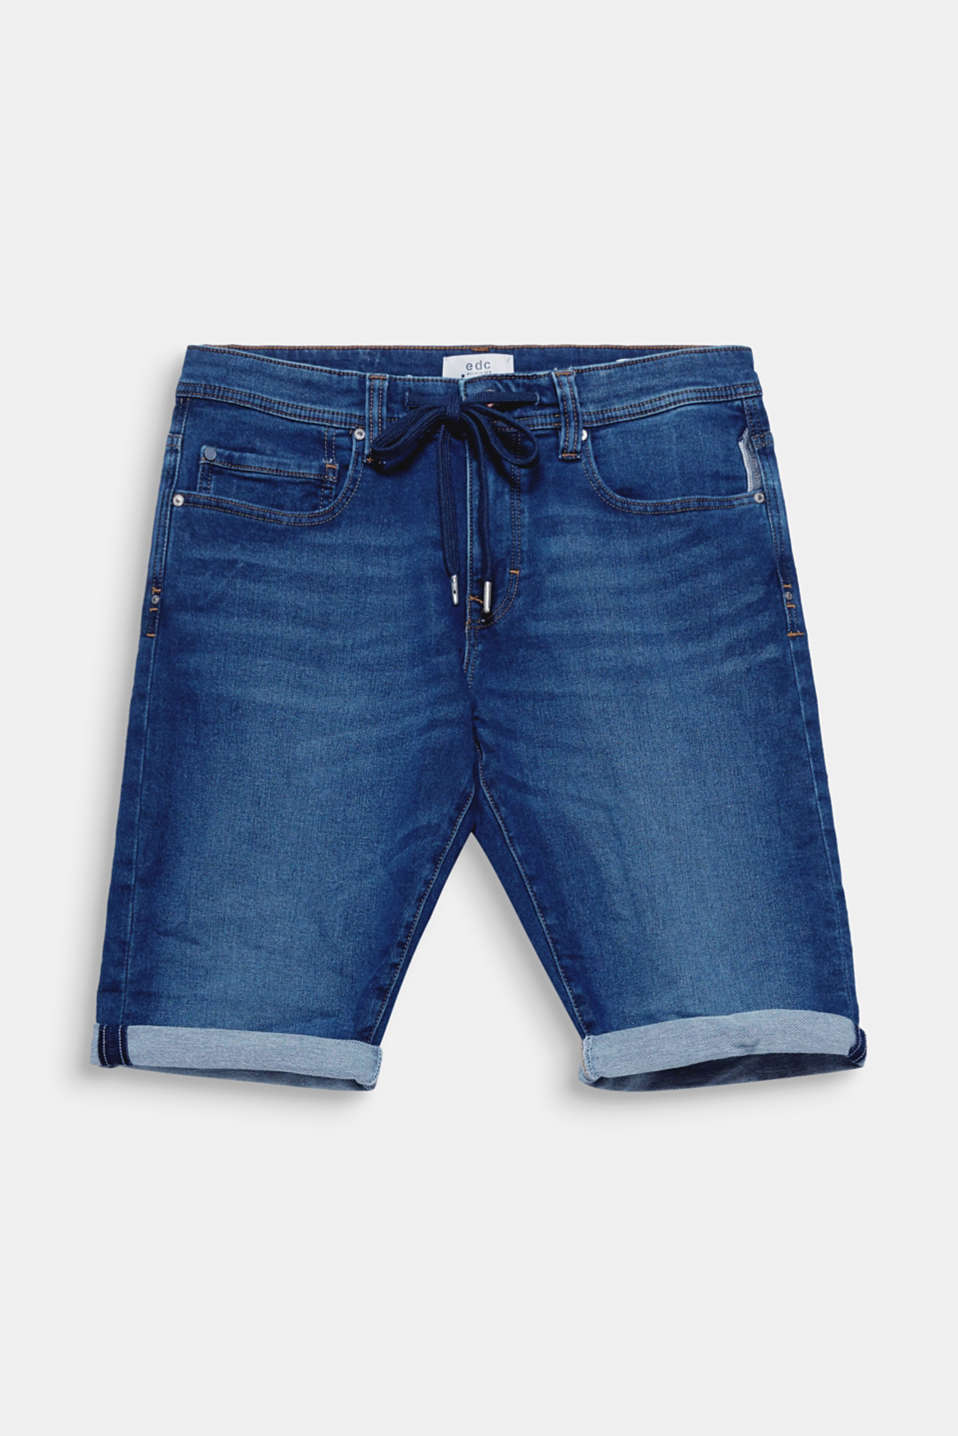 We love denim! Turning up the leg cuffs highlights the style of these casual denim shorts.